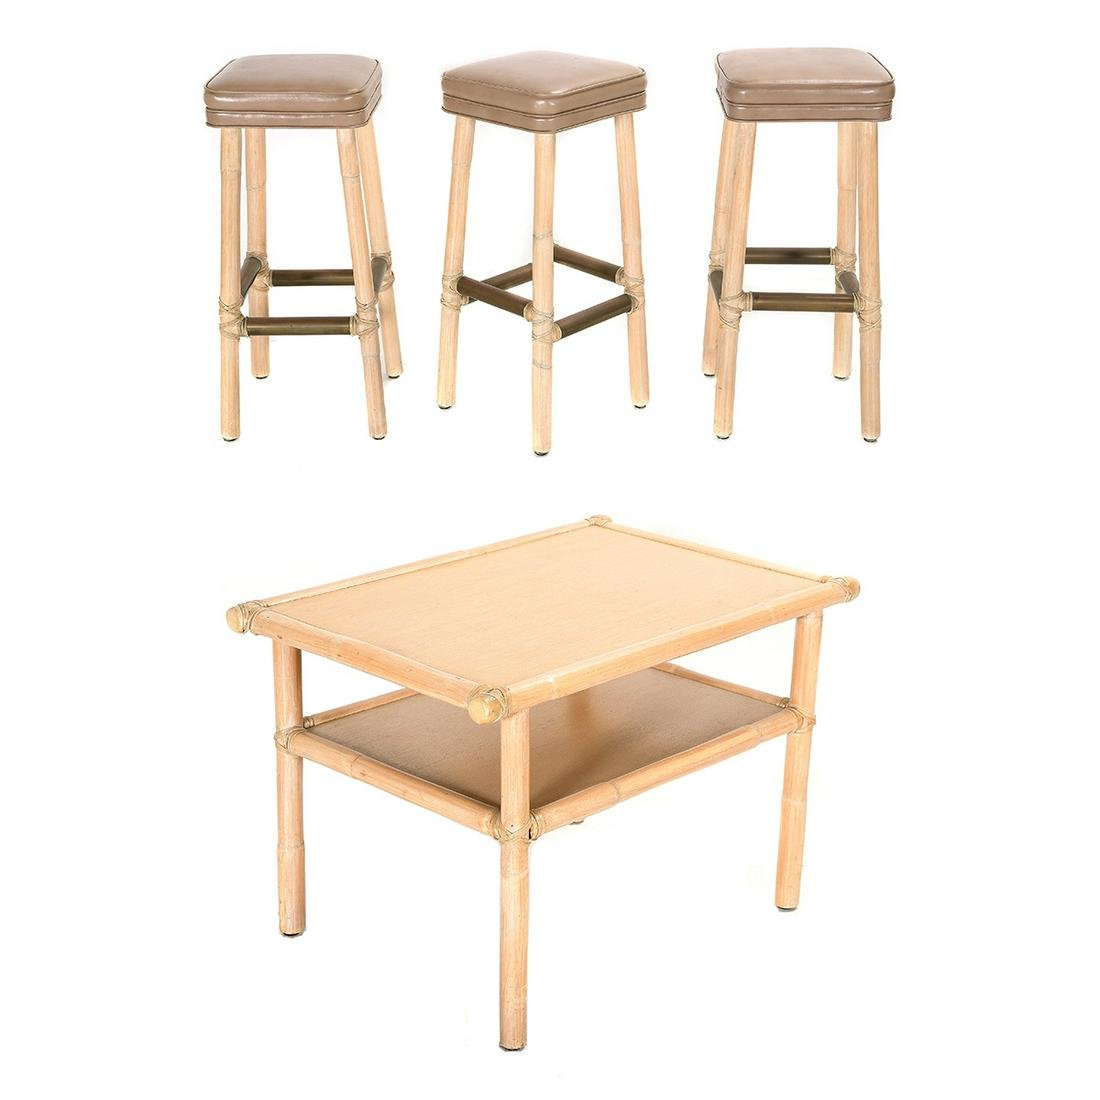 Three McGuire Bamboo Barstools and an End Table.